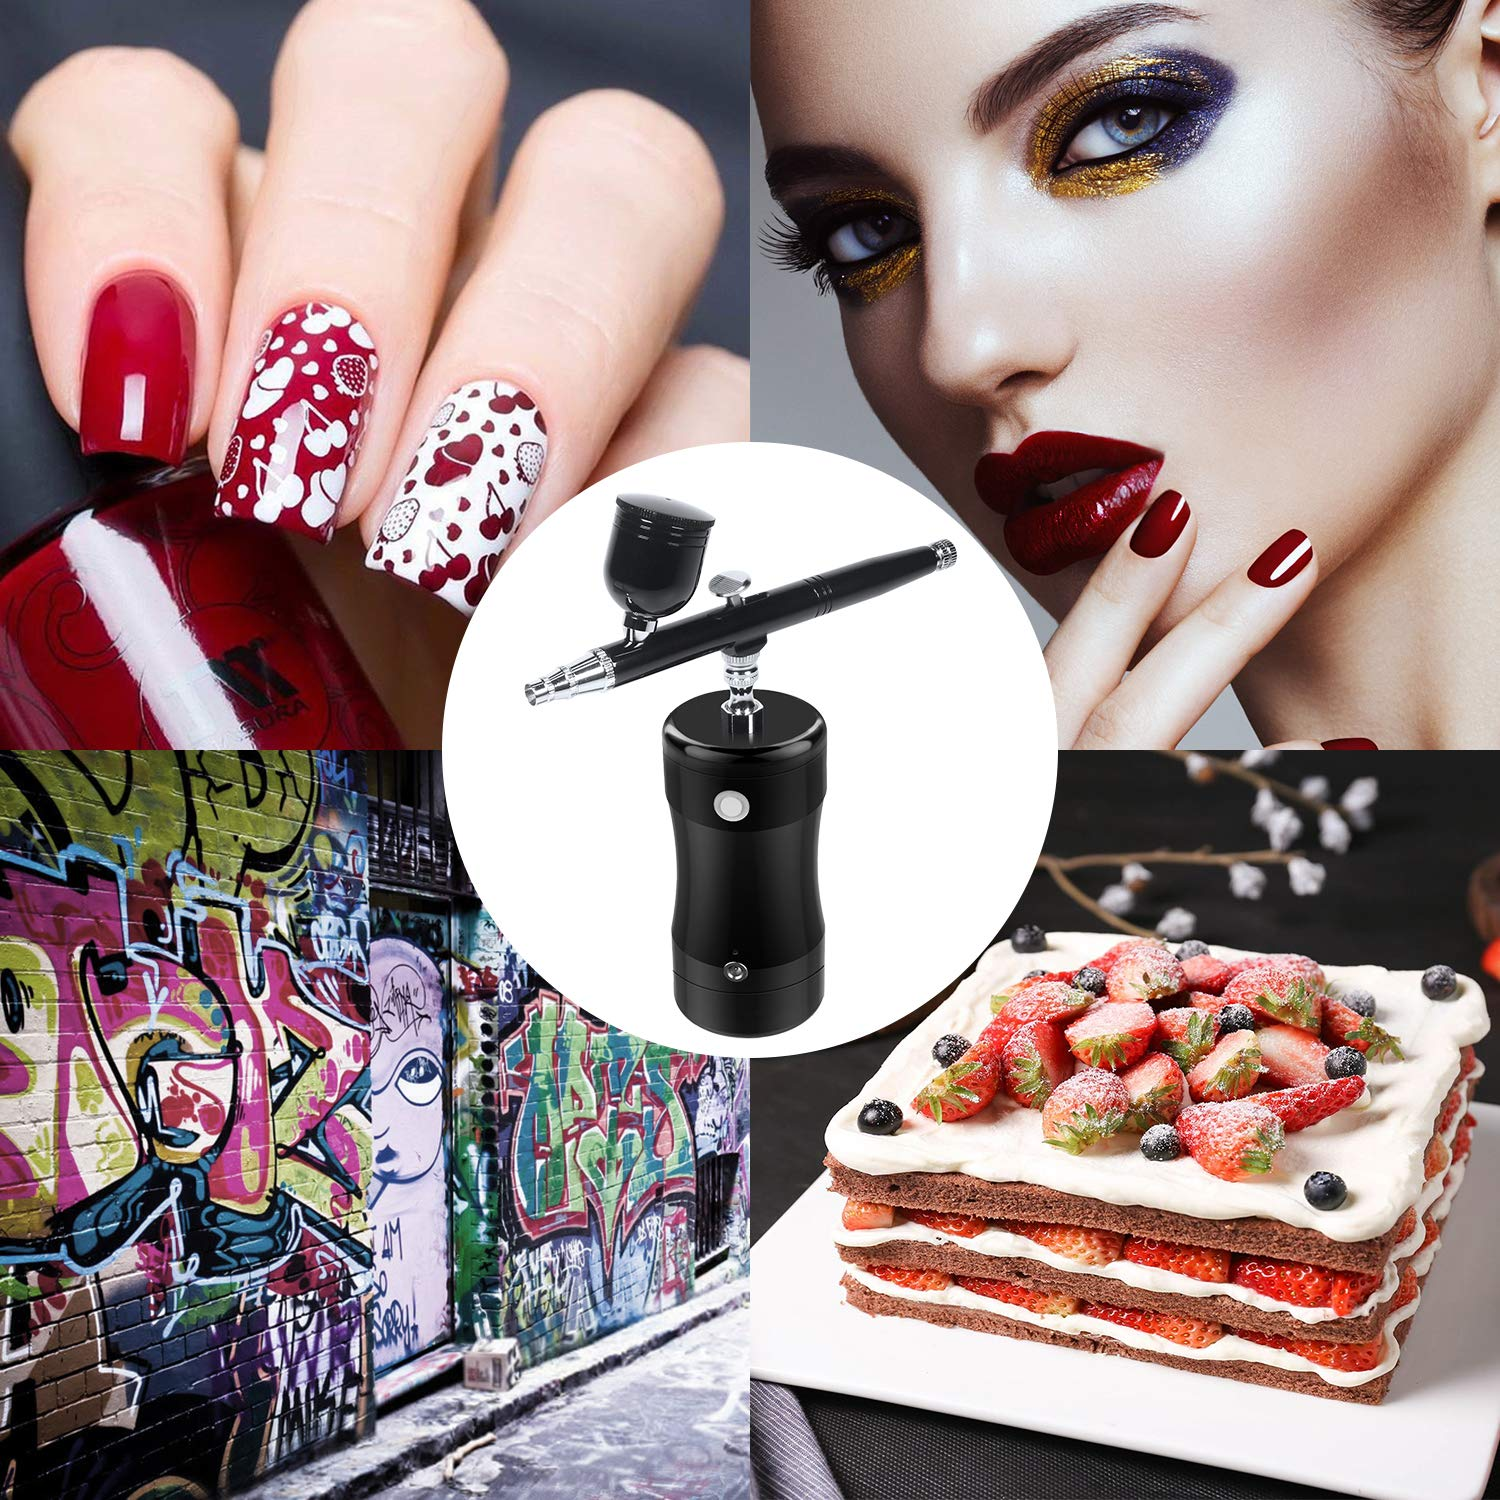 LATITOP Airbrush Kit Rechargeable Handheld Dual-Action Mini Air Compressor Airbrush Set with 0.4mm Nozzles, Portable Cordless Airbrush Gun with Low Noise for Makeup, Tattoo, Nail Art, Face Paint, Cake